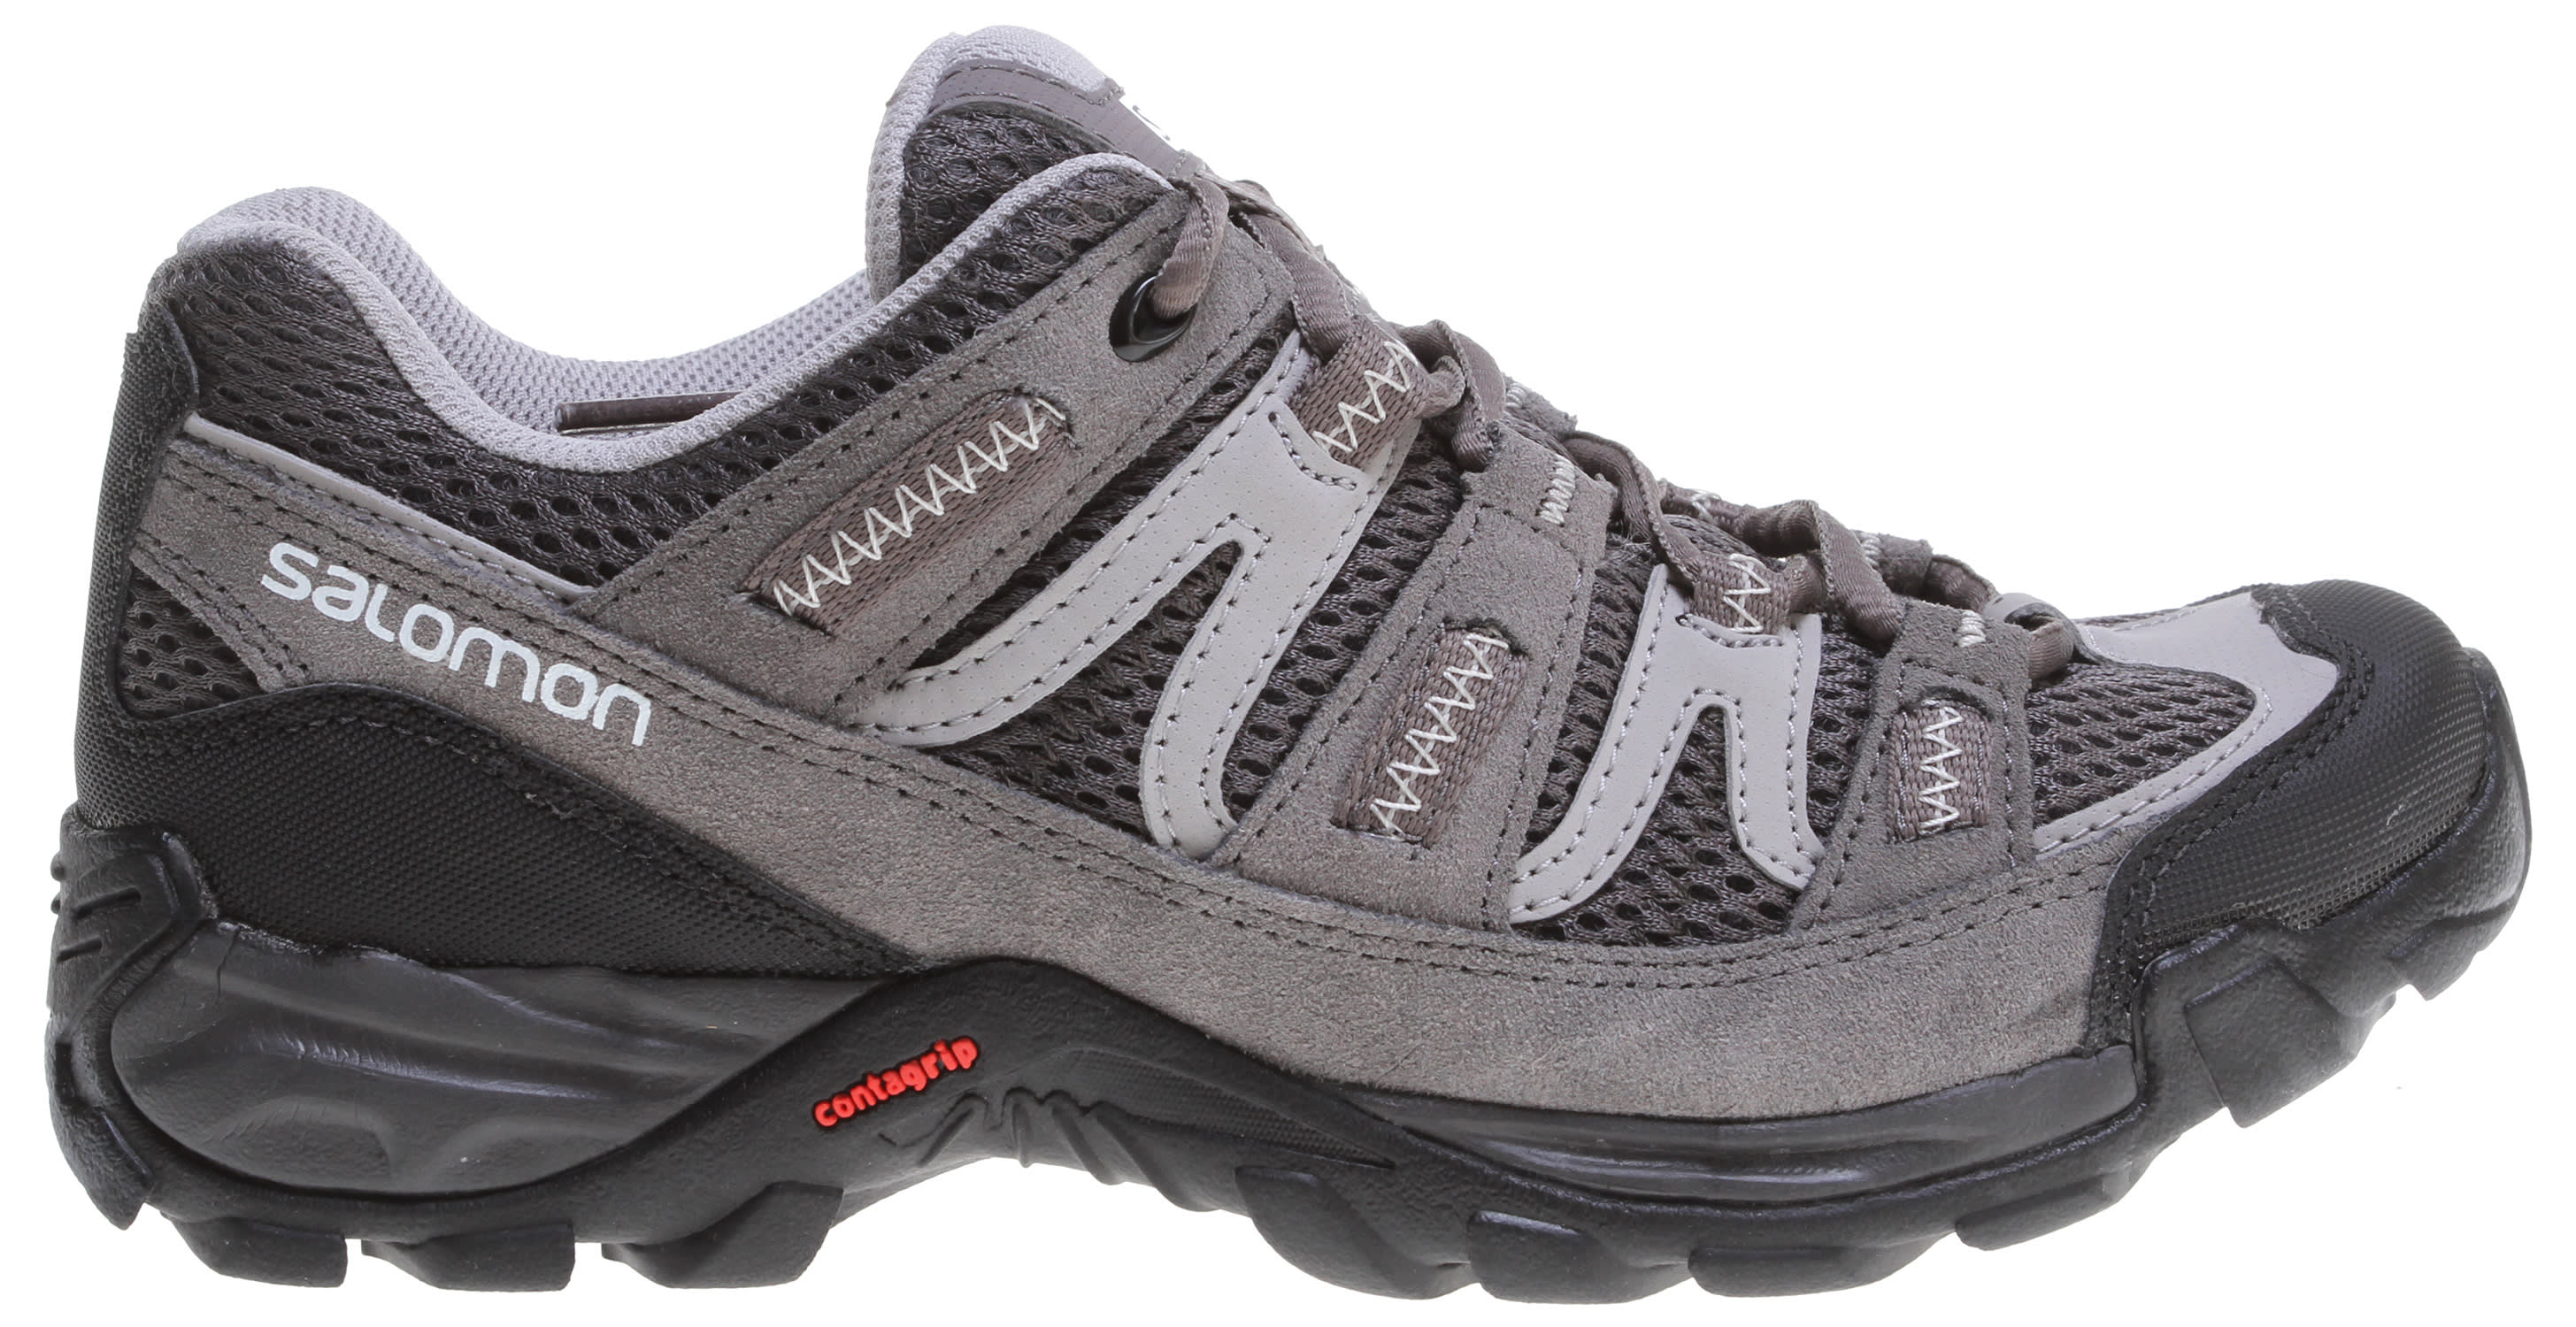 Womens Water Shoes Reviews